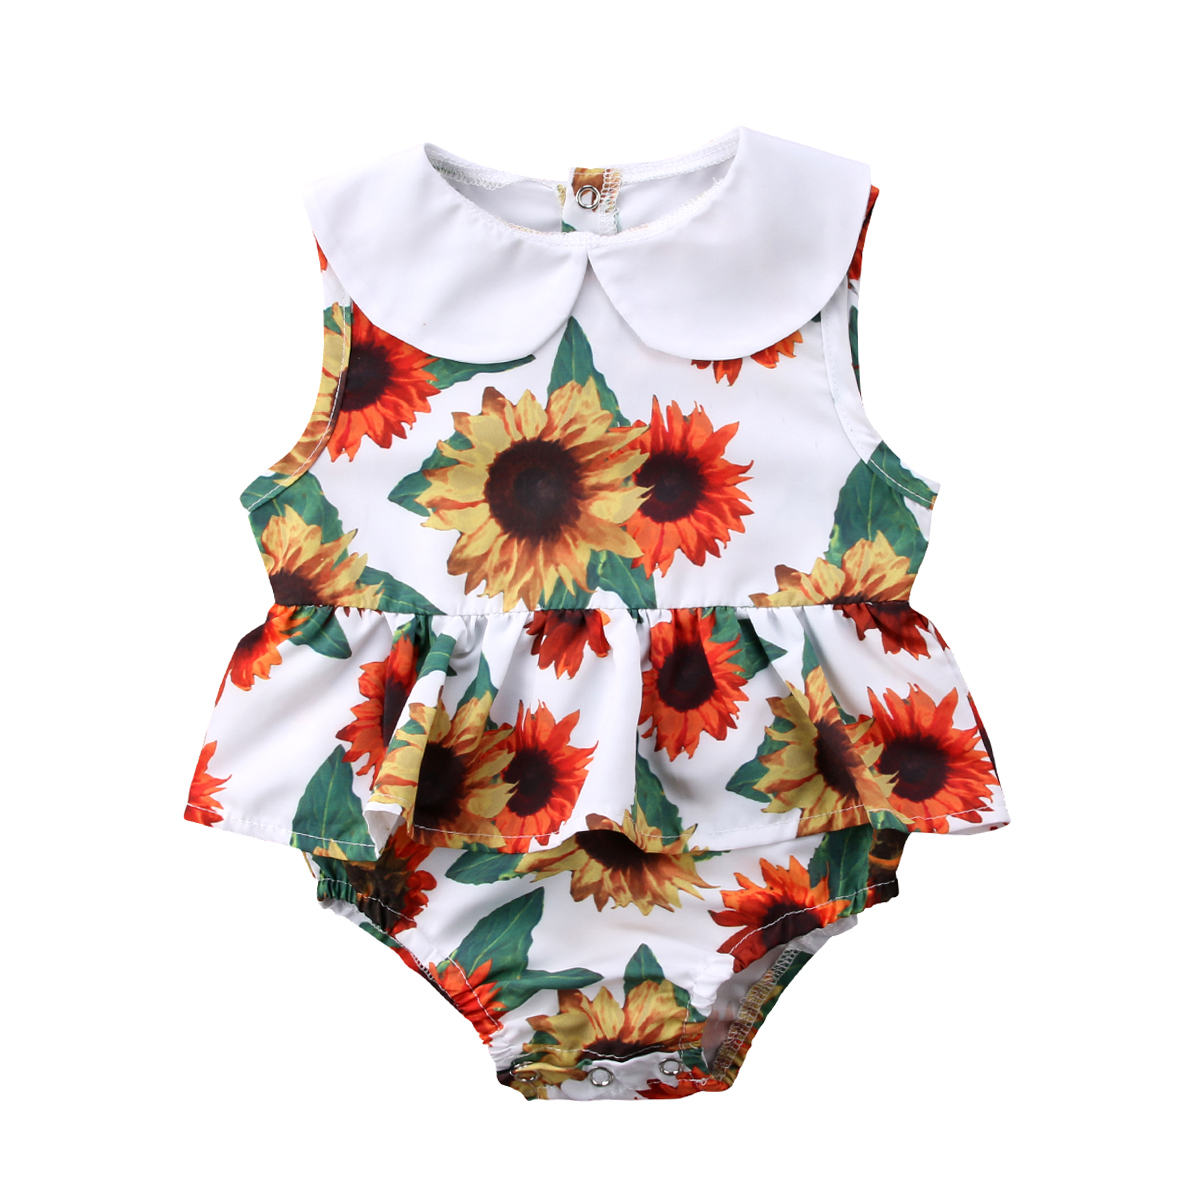 Pudcoco Summer New Sunflower Newborn Infant Baby Girls   Romper   Cute Ruffles Sleeveless Jumpsuit Summer Clothes